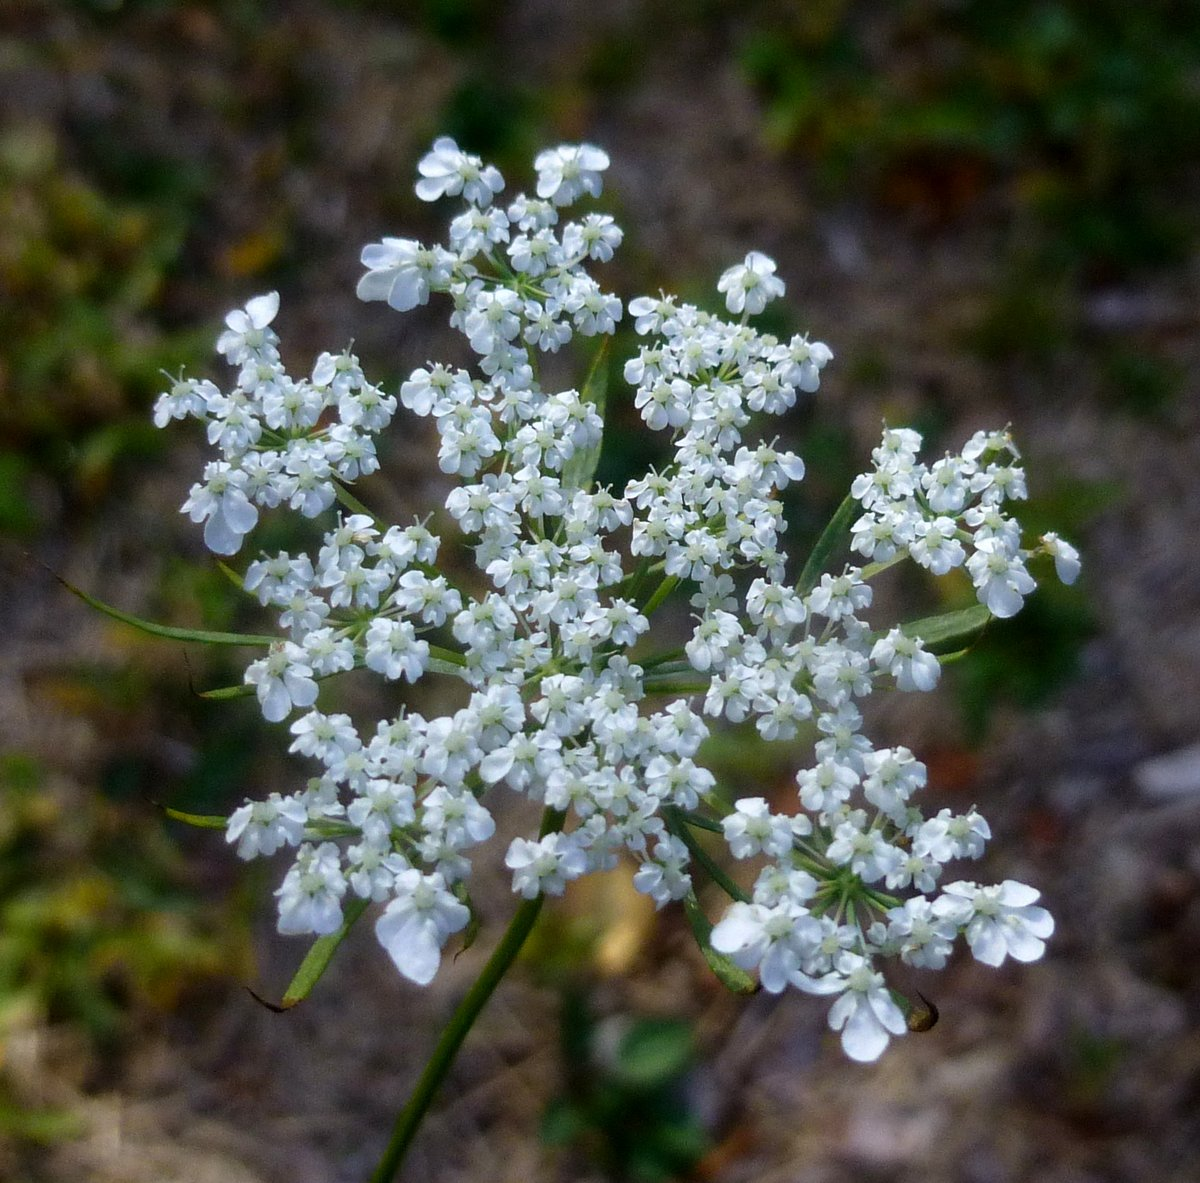 5. Queen Anne's Lace